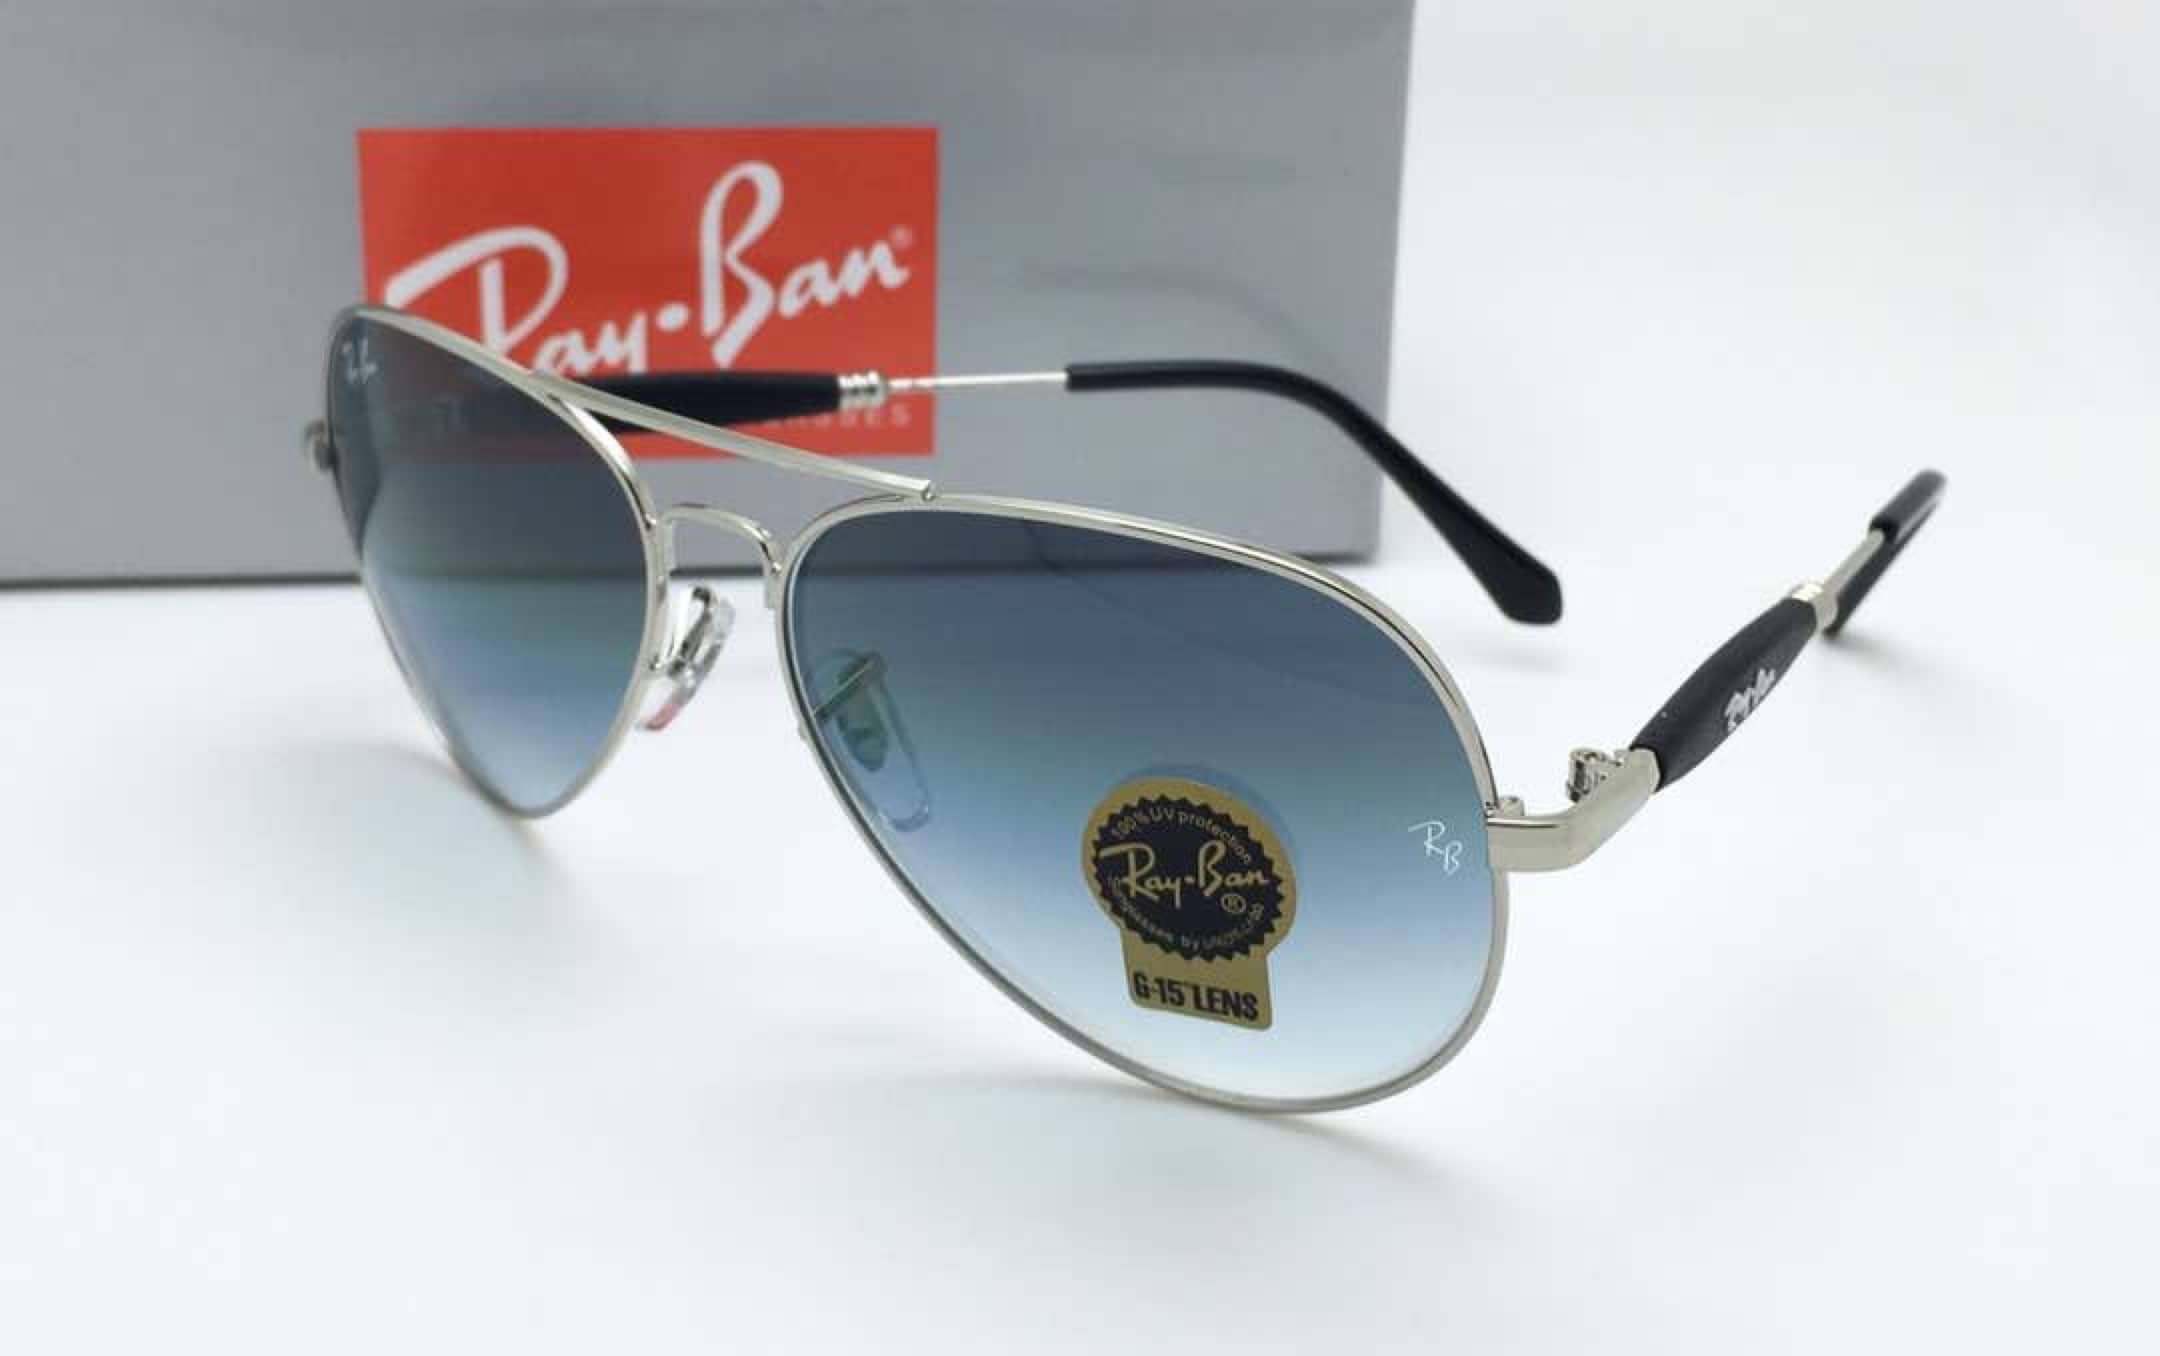 "RAYBAN Sale @ 999/- with box.. 17 Pics Inside.. ⭕️NLY WHATSAPP ON 9650483403 FOR PRICE OR ORDERS (GENUINE BUYERS ONLY)💯  ❌DO NOT CASUALLY HIT ""CHAT TO BUY"" BUTTON, ONLY WHATSAPP IF YOU ARE GENUINELY INTERESTED❗️    ♨️INBOX HERE IS FLODDED BY SPAMMERS SO MESSAGING HERE WONT FETCH YOU A REPLY.🚫  #sunglasses"